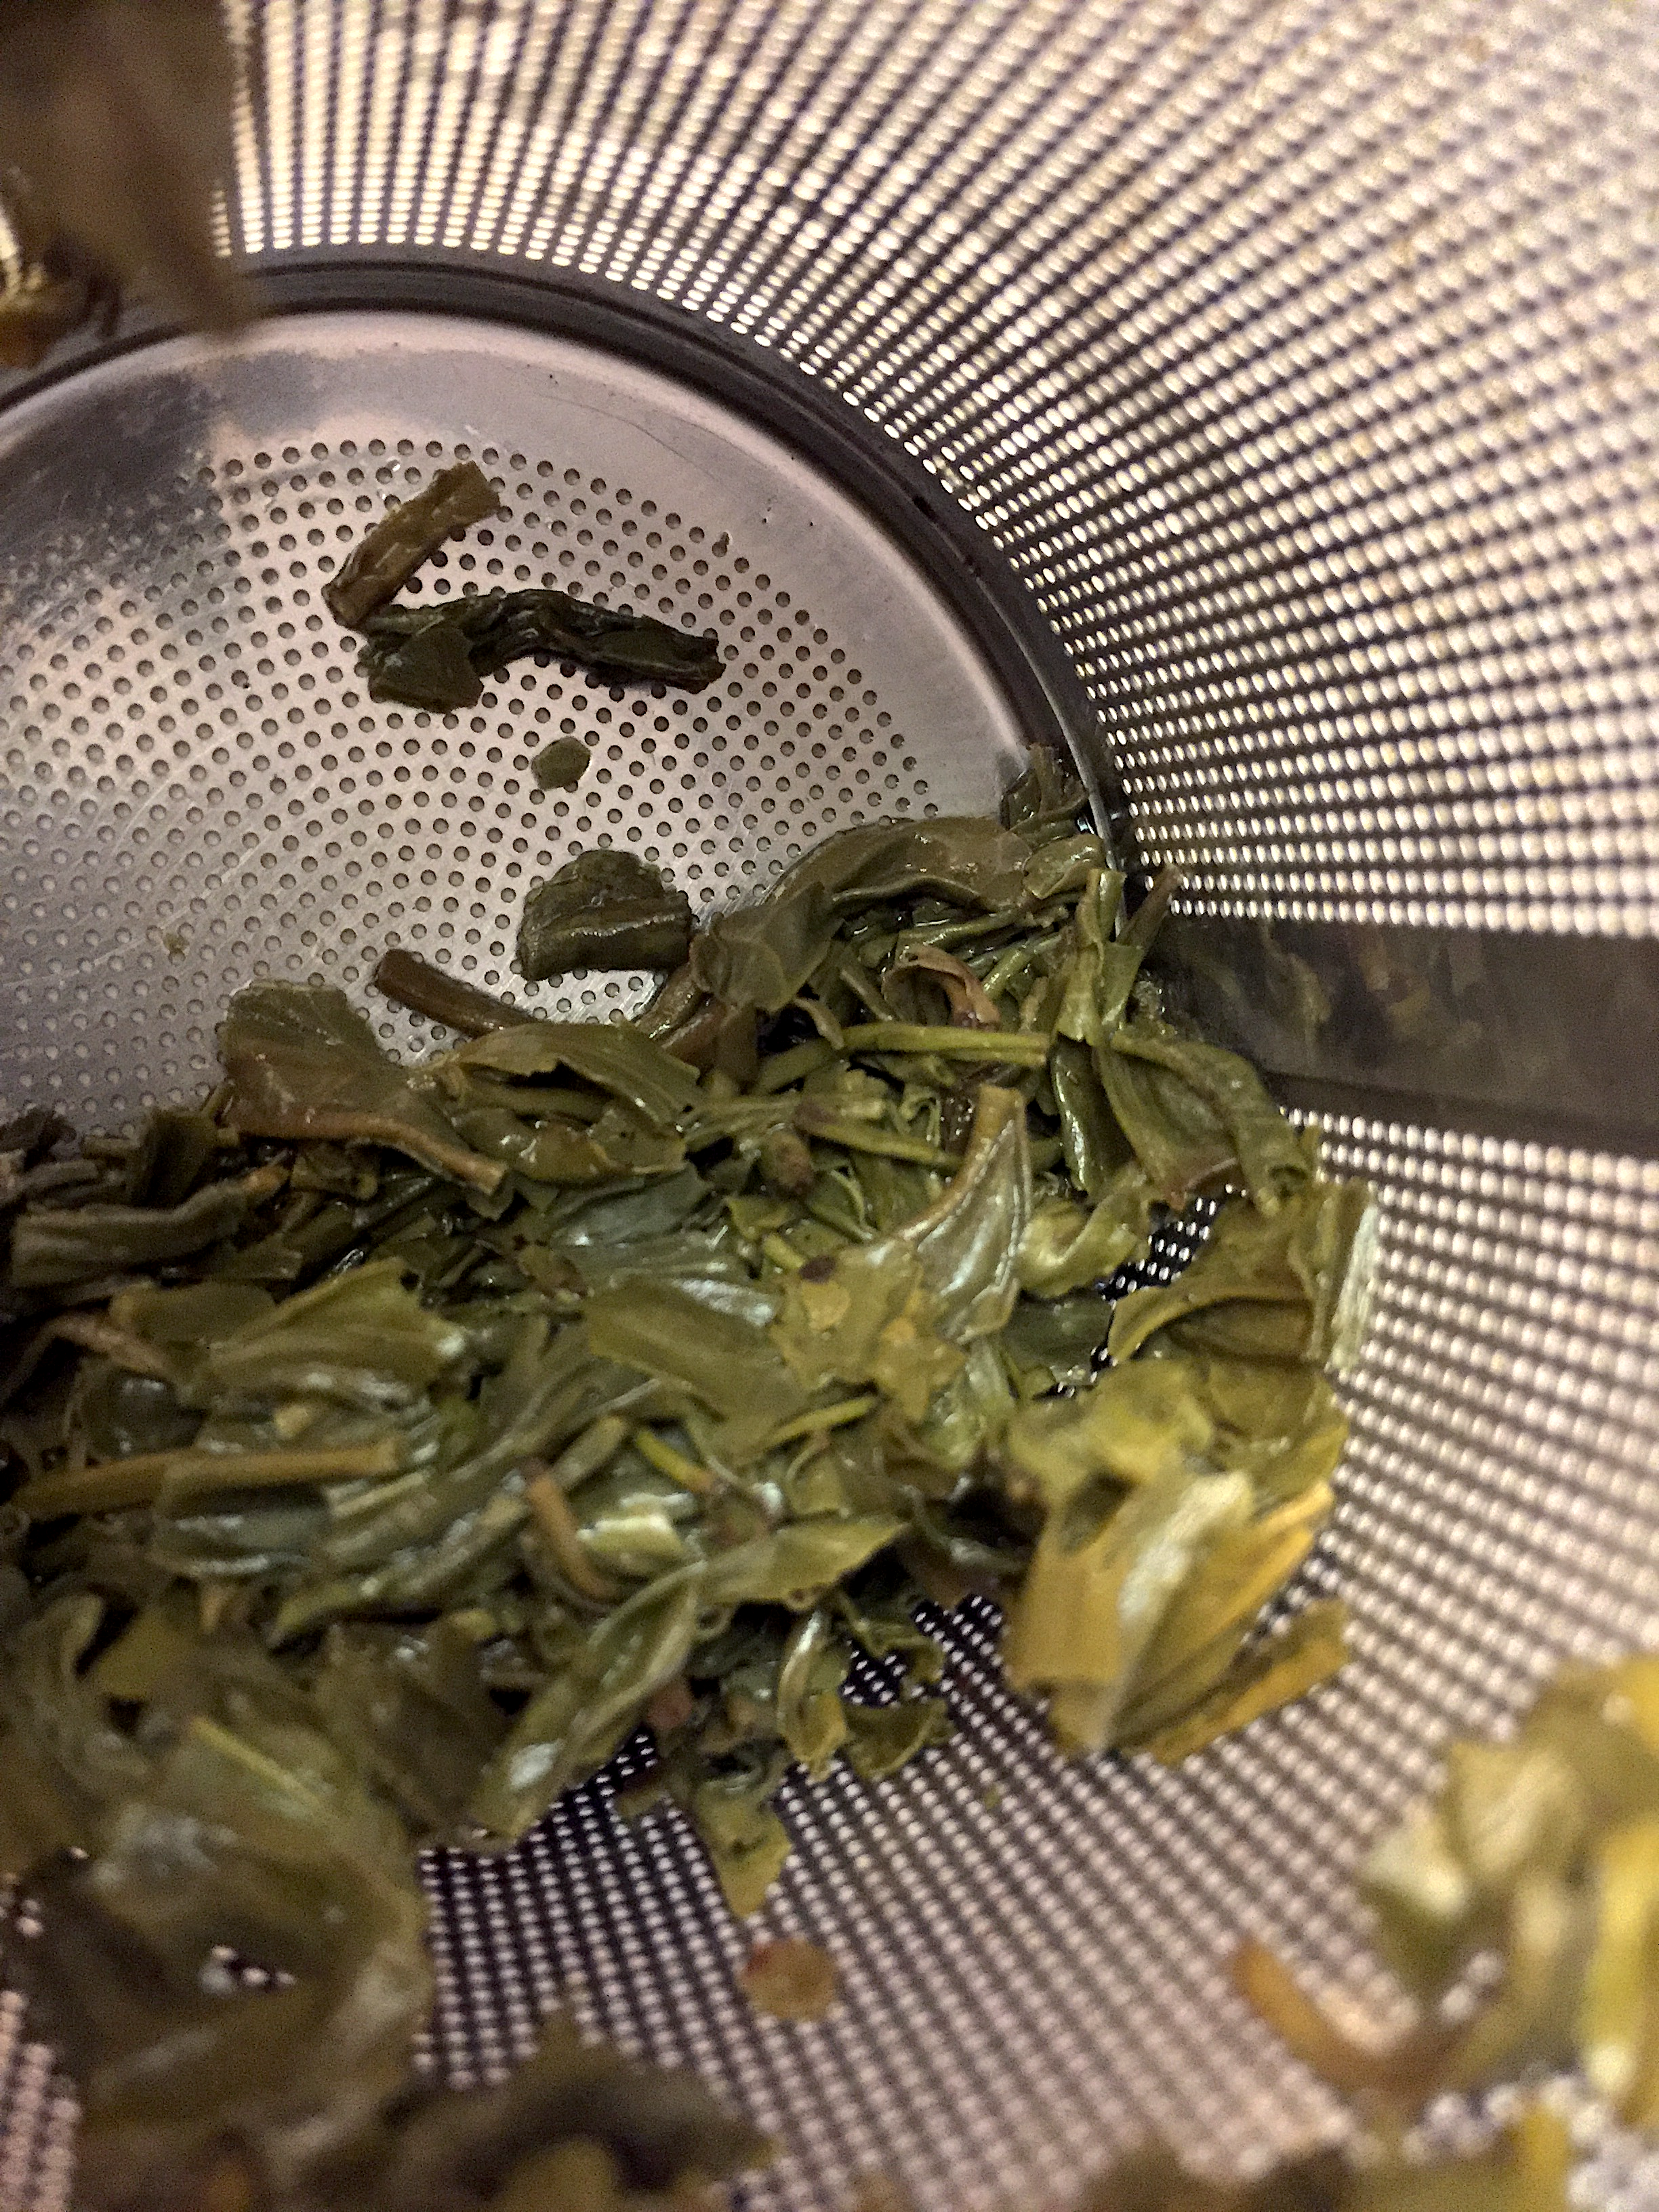 Photograph of Chun Mee (Arbor Teas) ~ spent by Jocilyn Mors is licensed under a Creative Commons Attribution-NonCommercial-ShareAlike 4.0 International License.